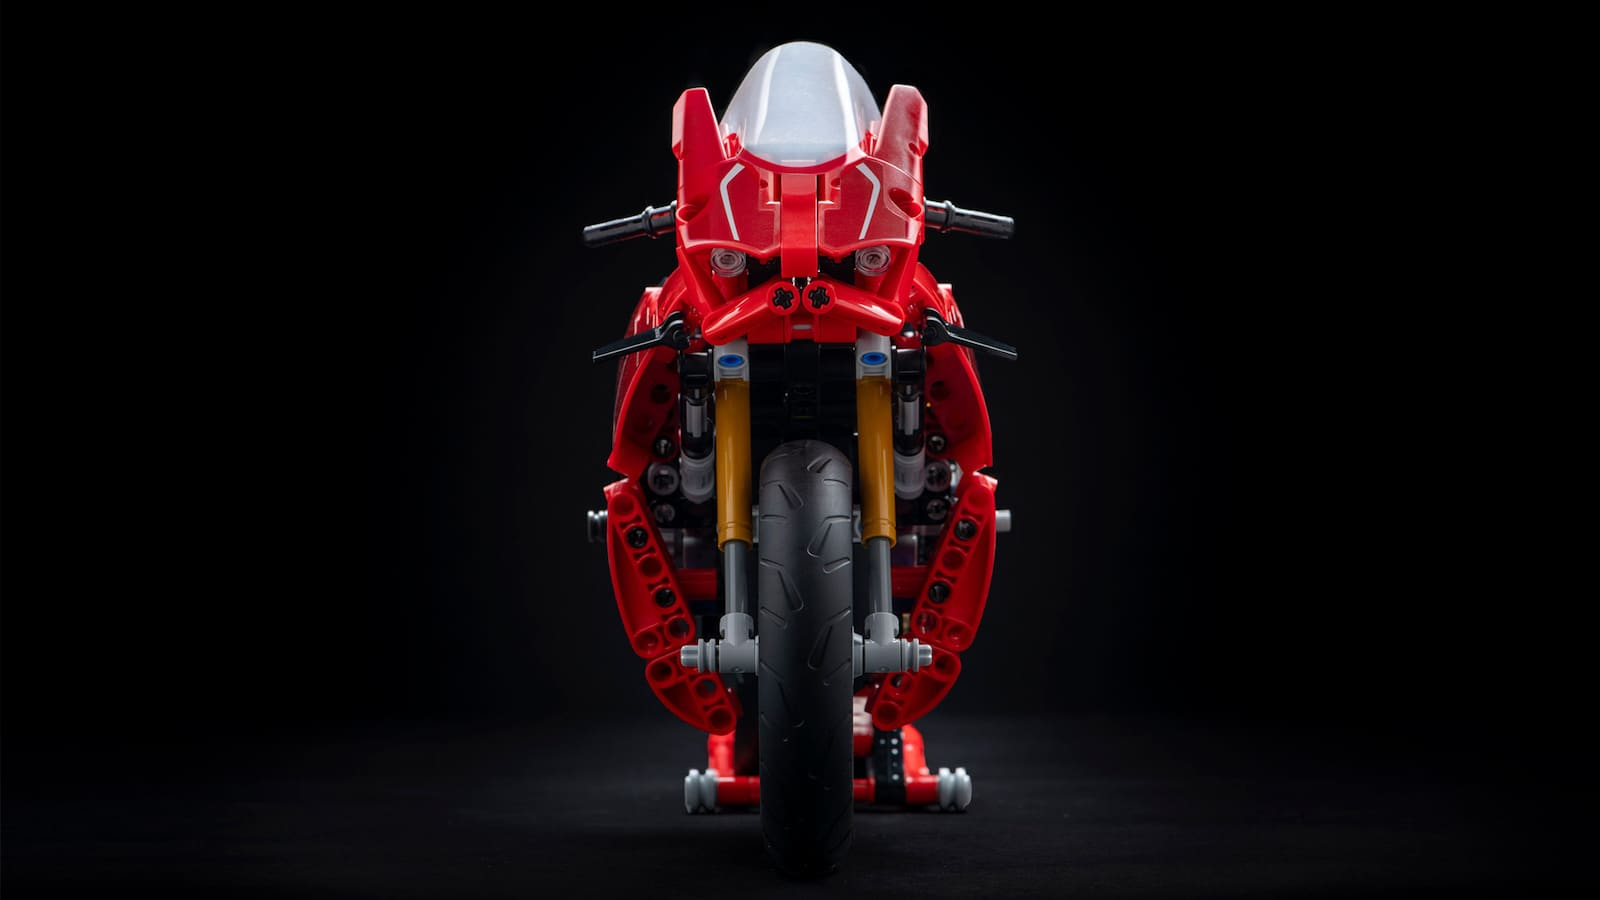 Lego Ducati Panigale V4R. With winglets on the front!